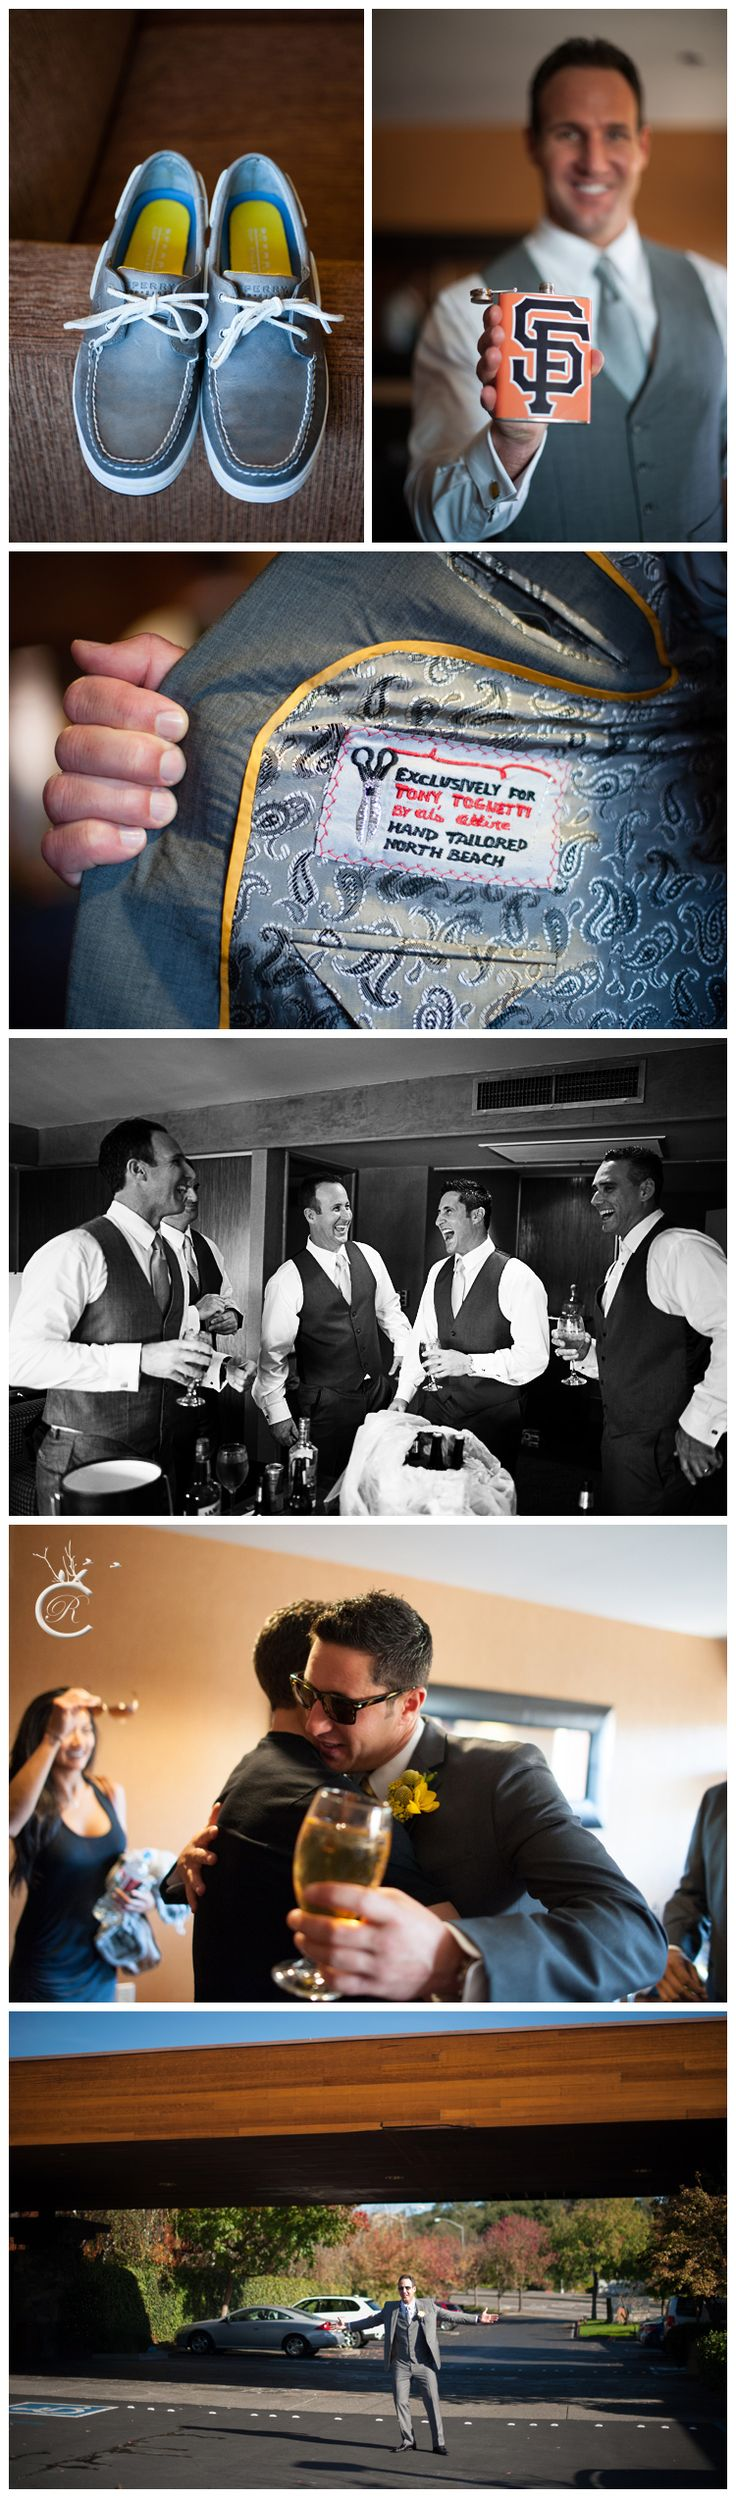 Fun SF Giants flask for the groom! Sperry Topsiders for groomsmen, hand tailored groom's suit,Beautiful wedding at St. Francis Winery in Santa Rosa